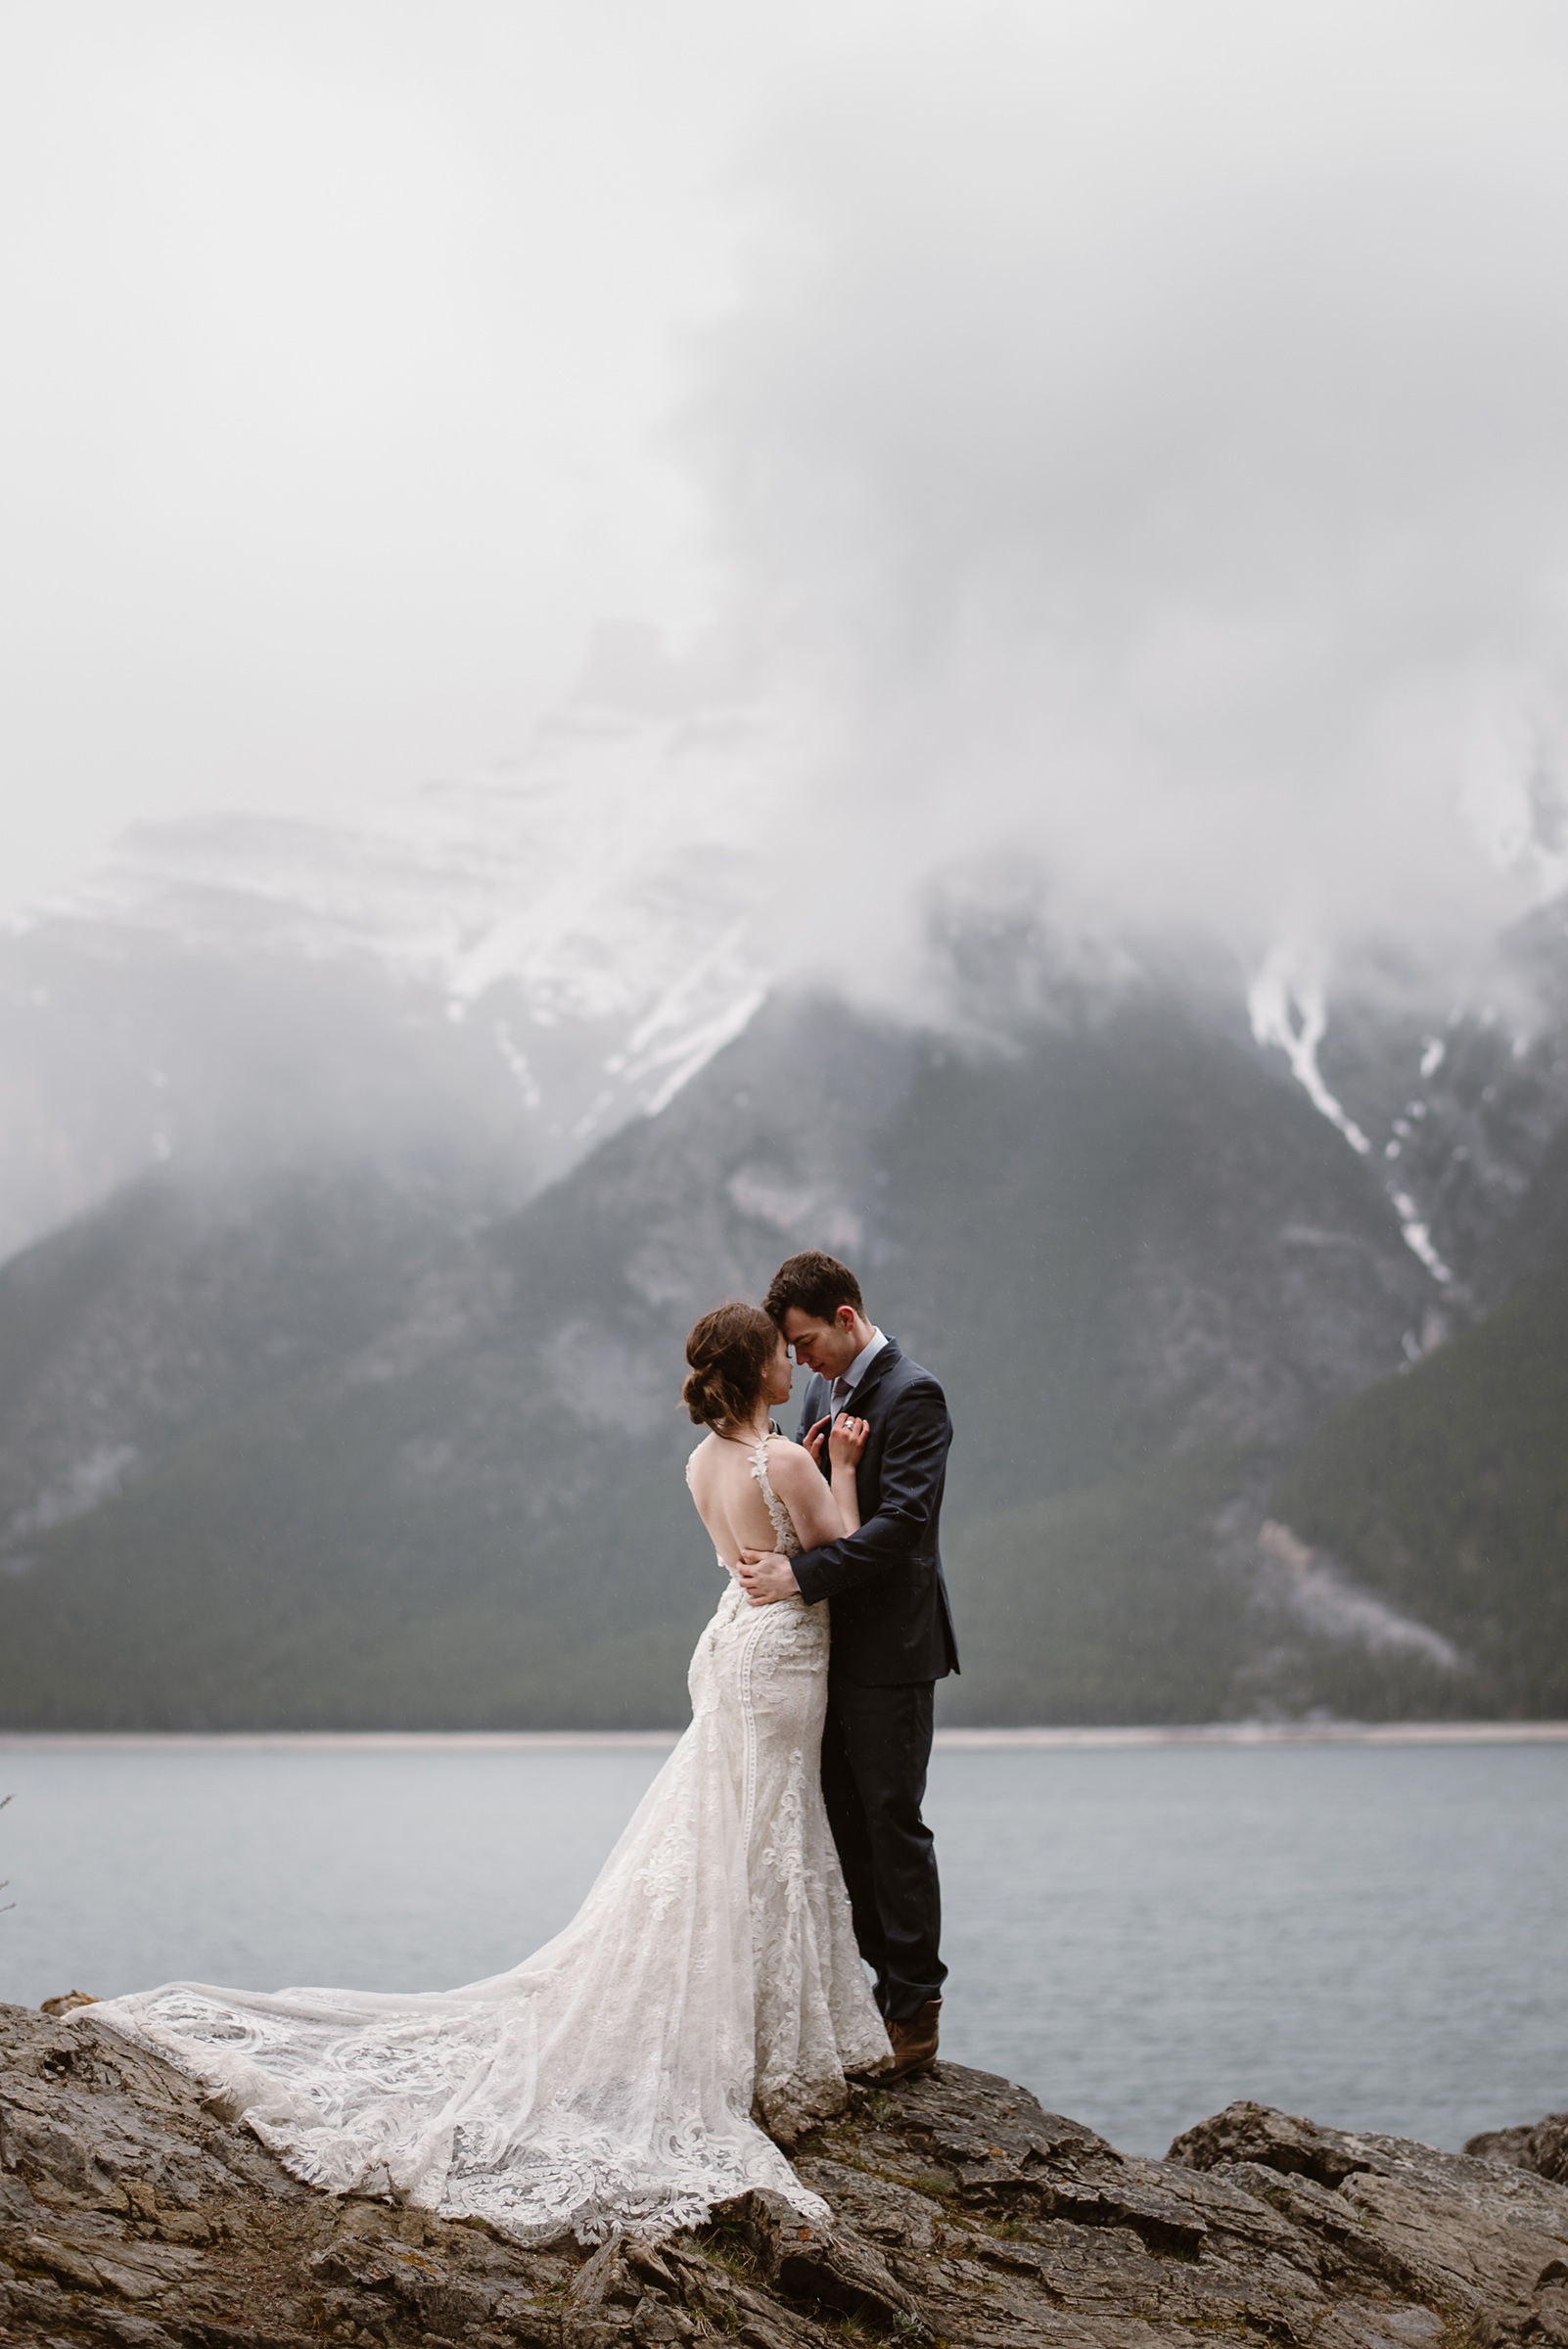 Face to face couple against water and misty mountains - photo by Virginia & Evan